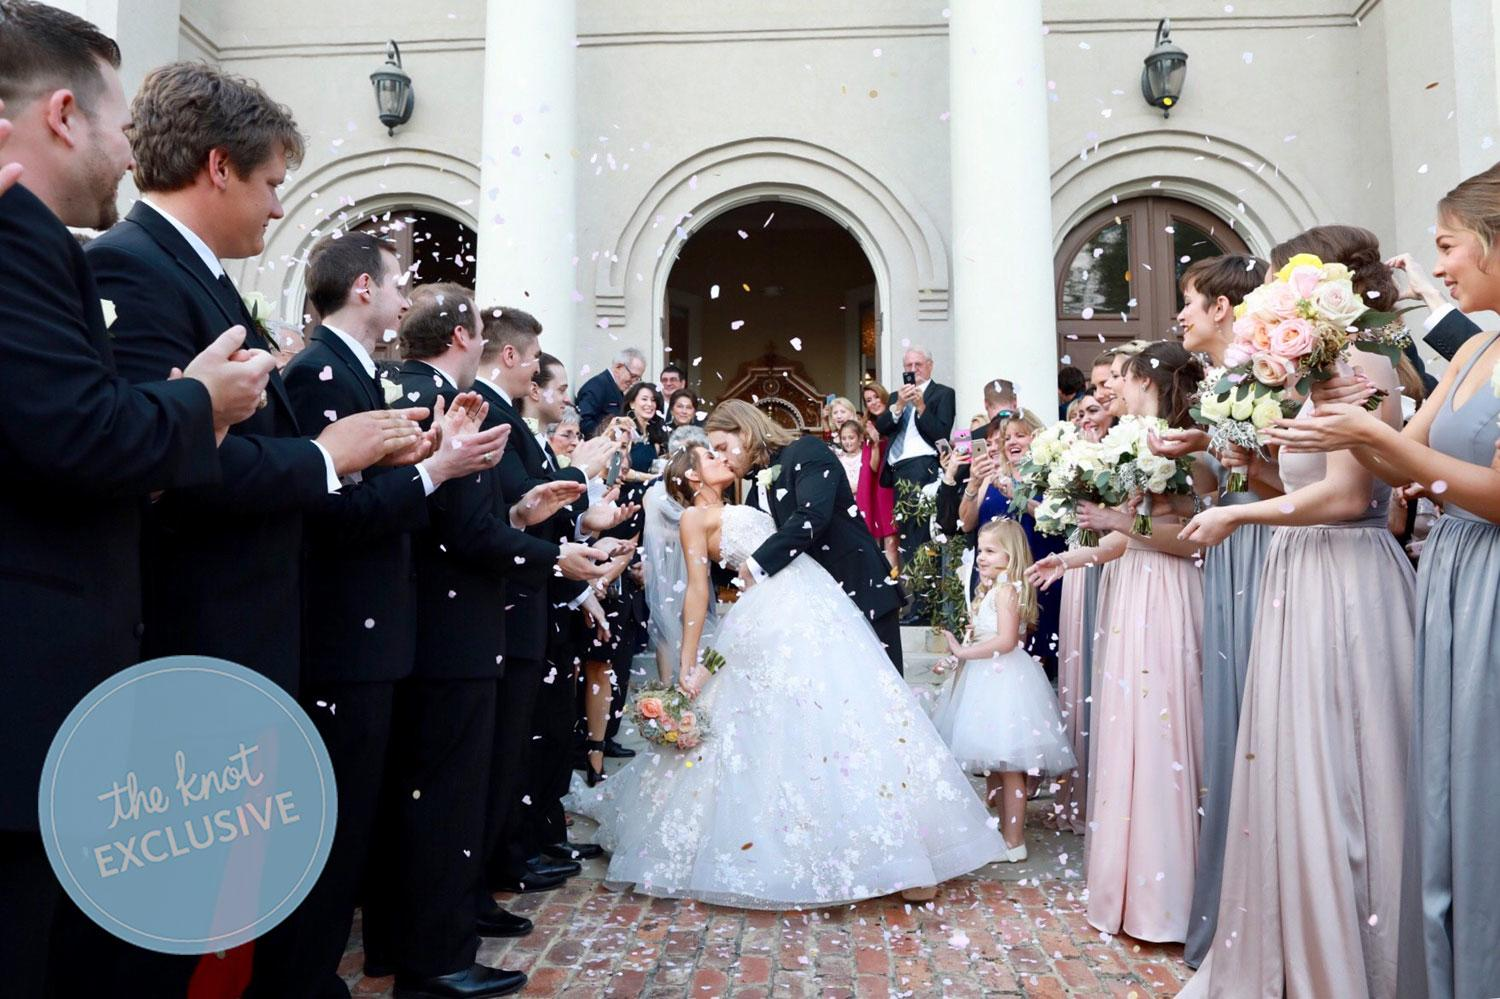 The Best Exclusive Miss America Betty Cantrell Marries Spencer Maxwell Pictures